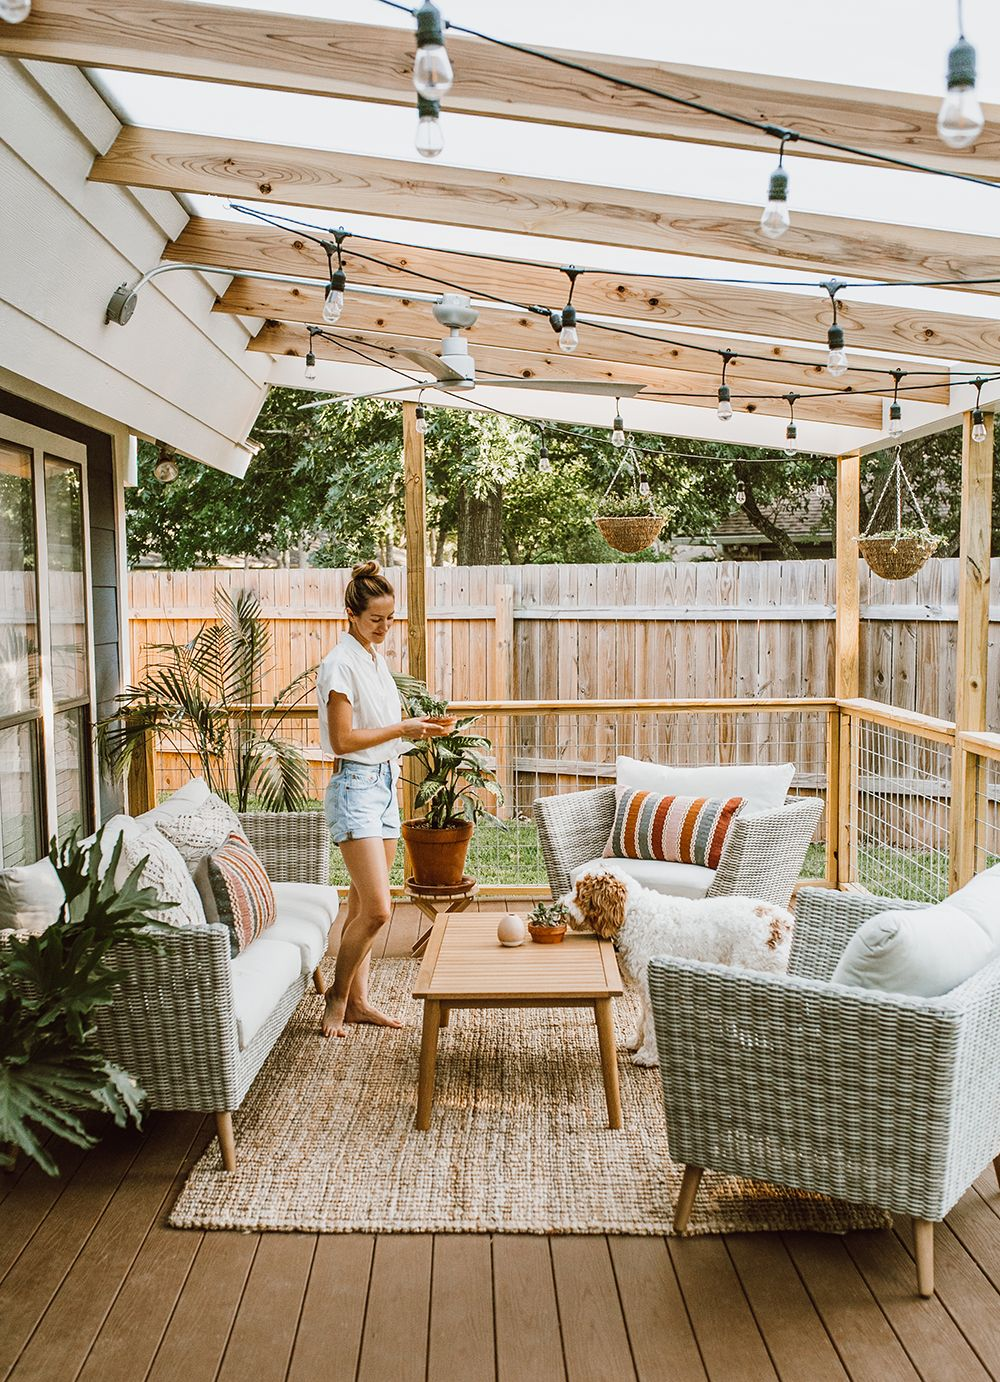 Before & After: Our Patio Reveal! – LivvyLand|Austin Fashion and Style Blogger